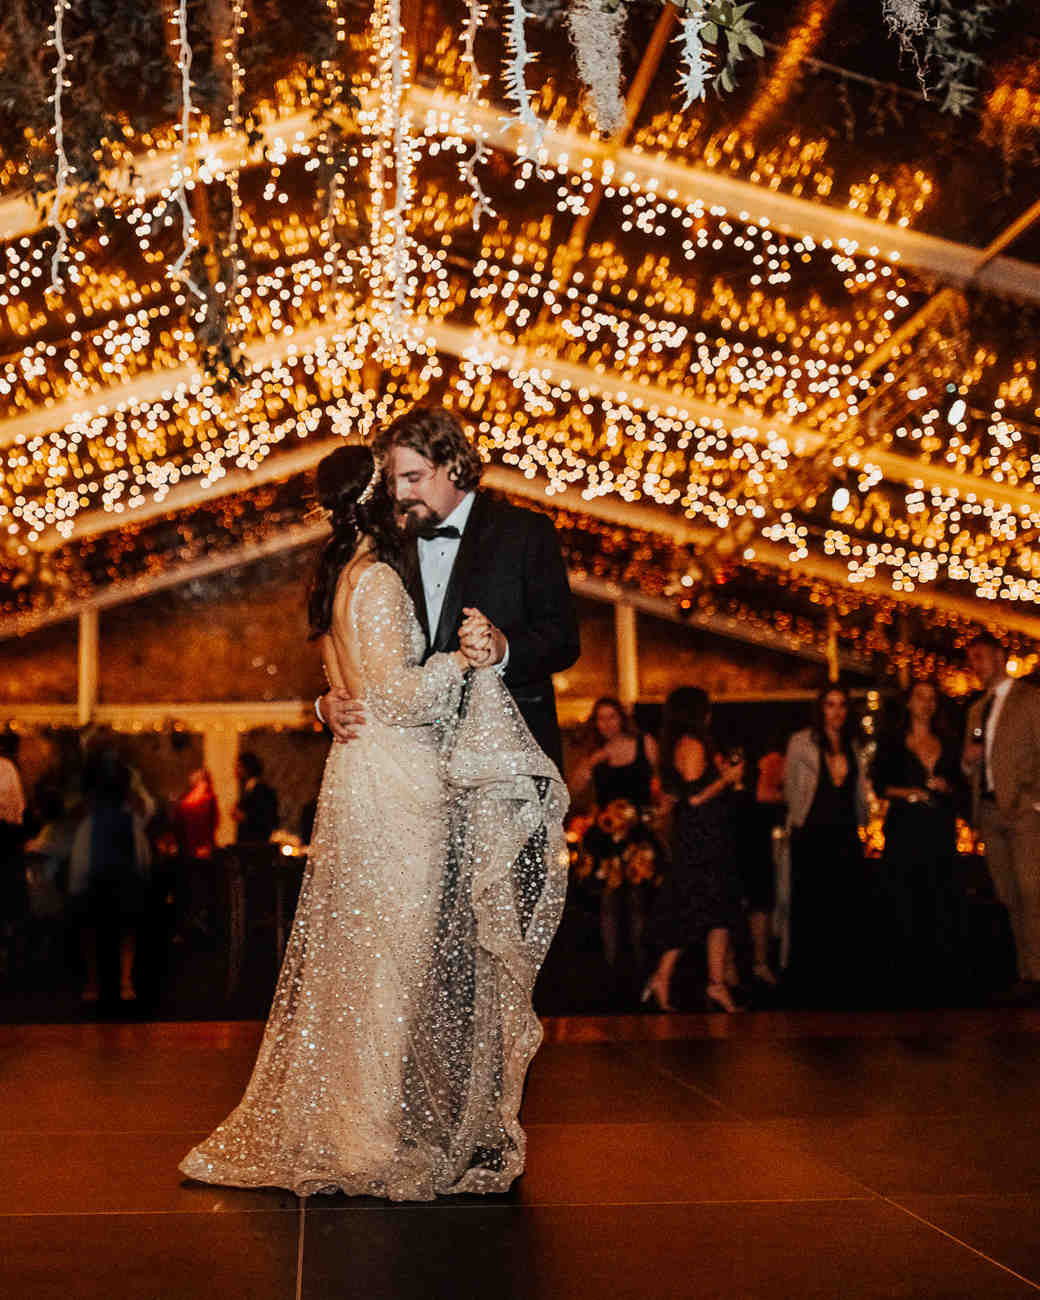 bride and groom share first dance under a ceiling of string lights